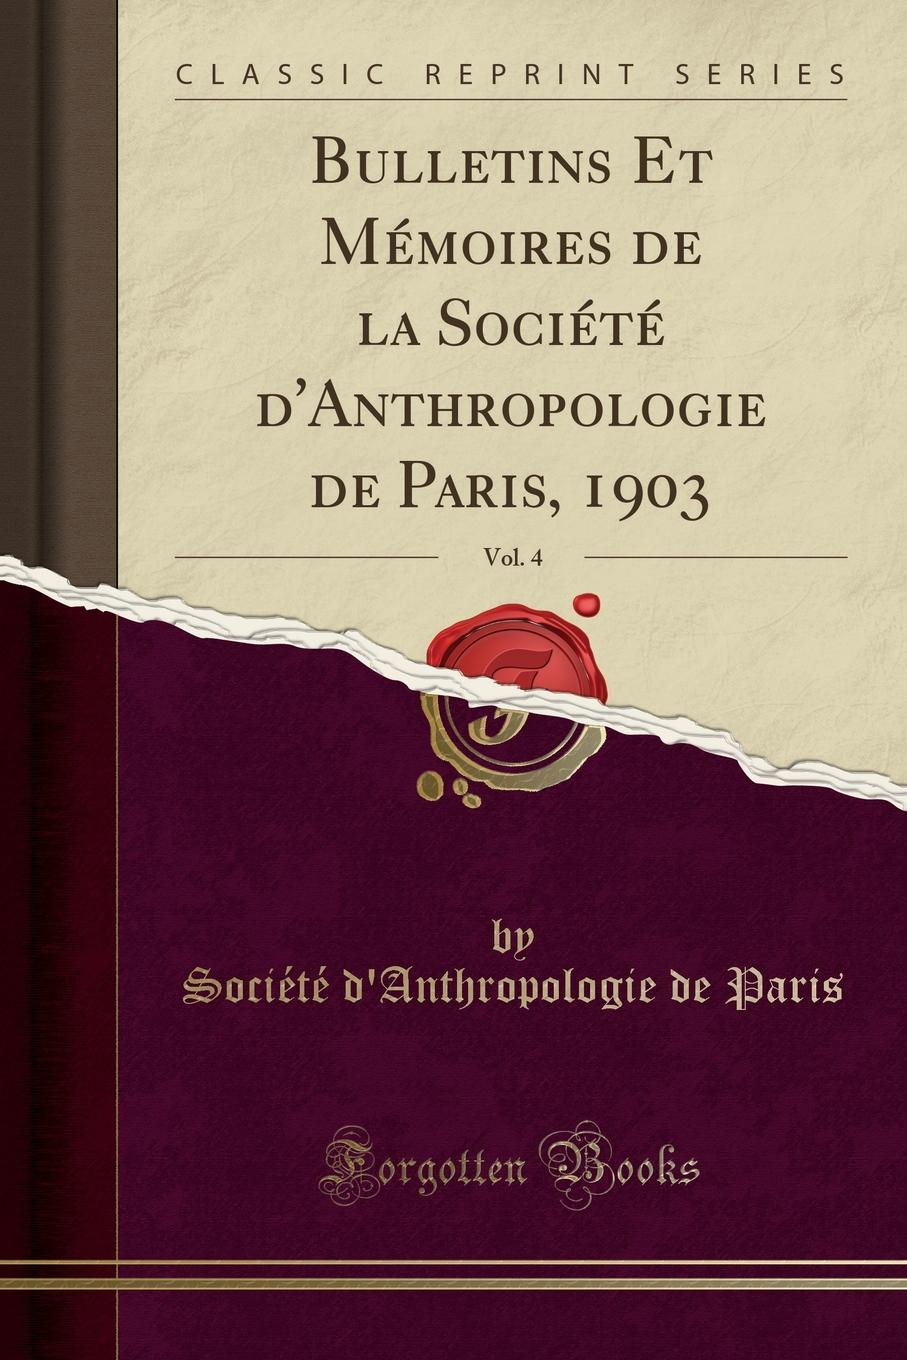 Société d'Anthropologie de Paris Bulletins Et Memoires de la Societe d.Anthropologie de Paris, 1903, Vol. 4 (Classic Reprint)